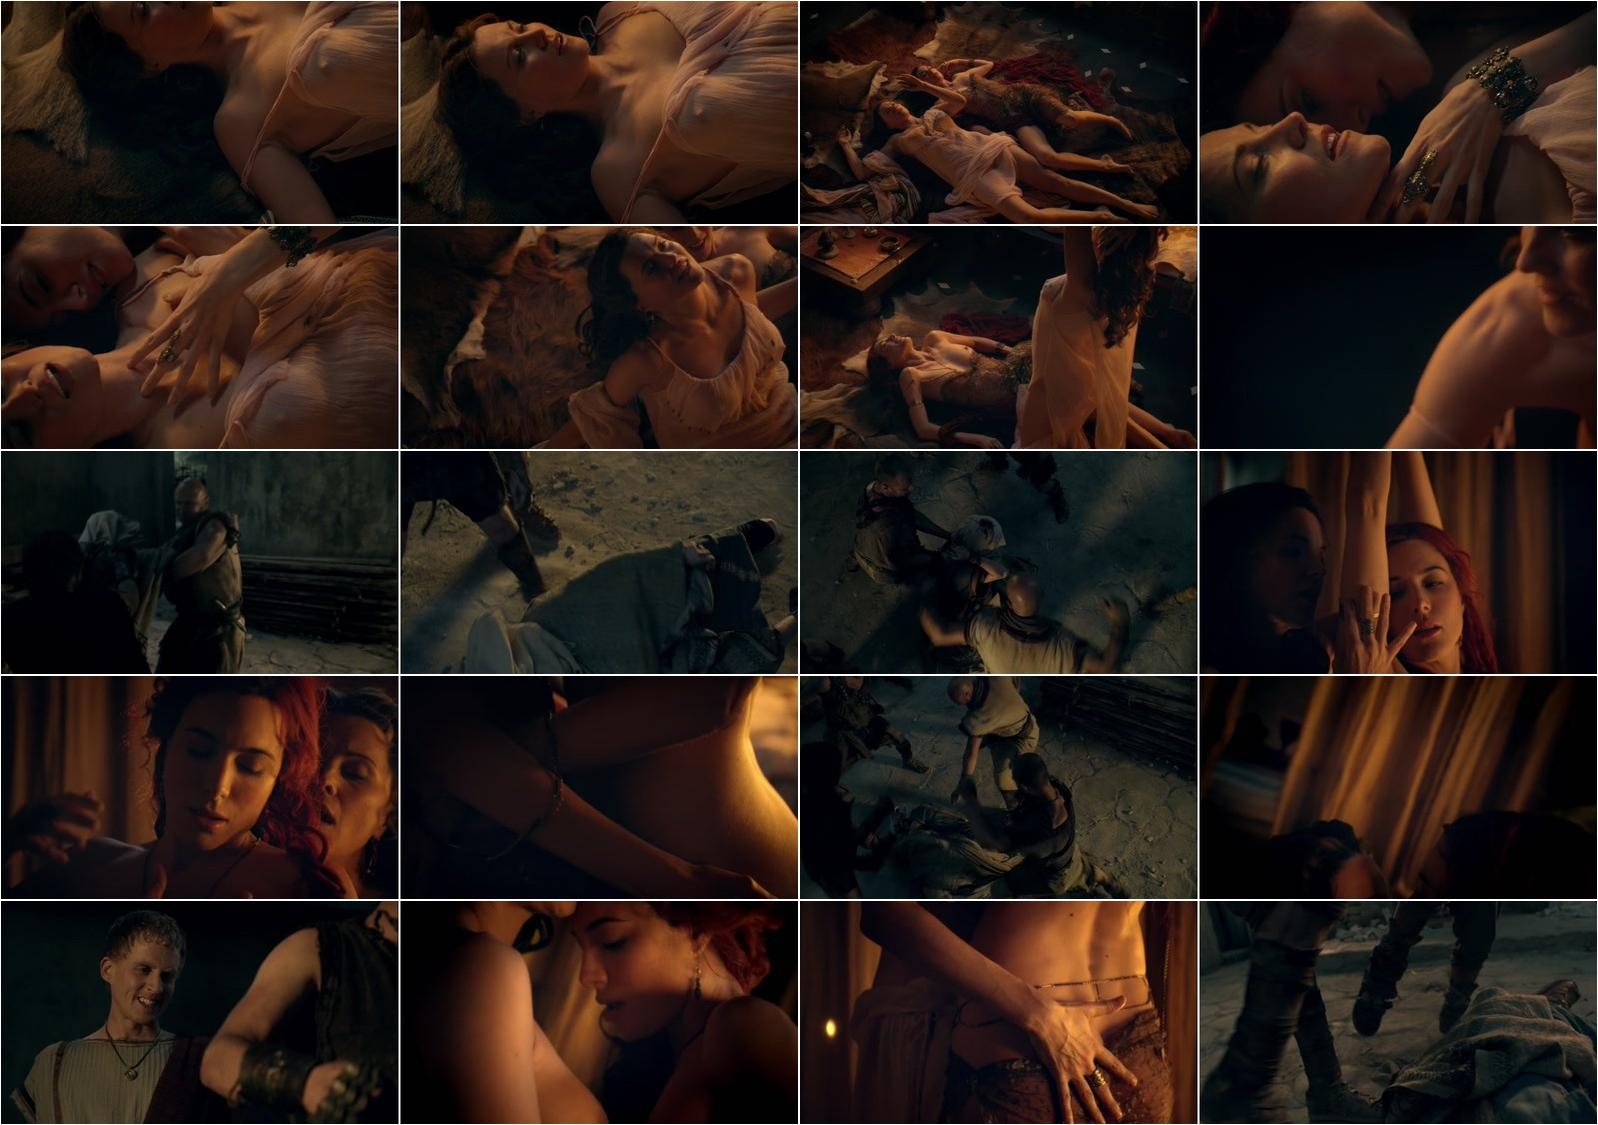 Lucy Lawless nude, Jaime Murray nude - Spartacus: Gods of the Arena s01e01 (2011)